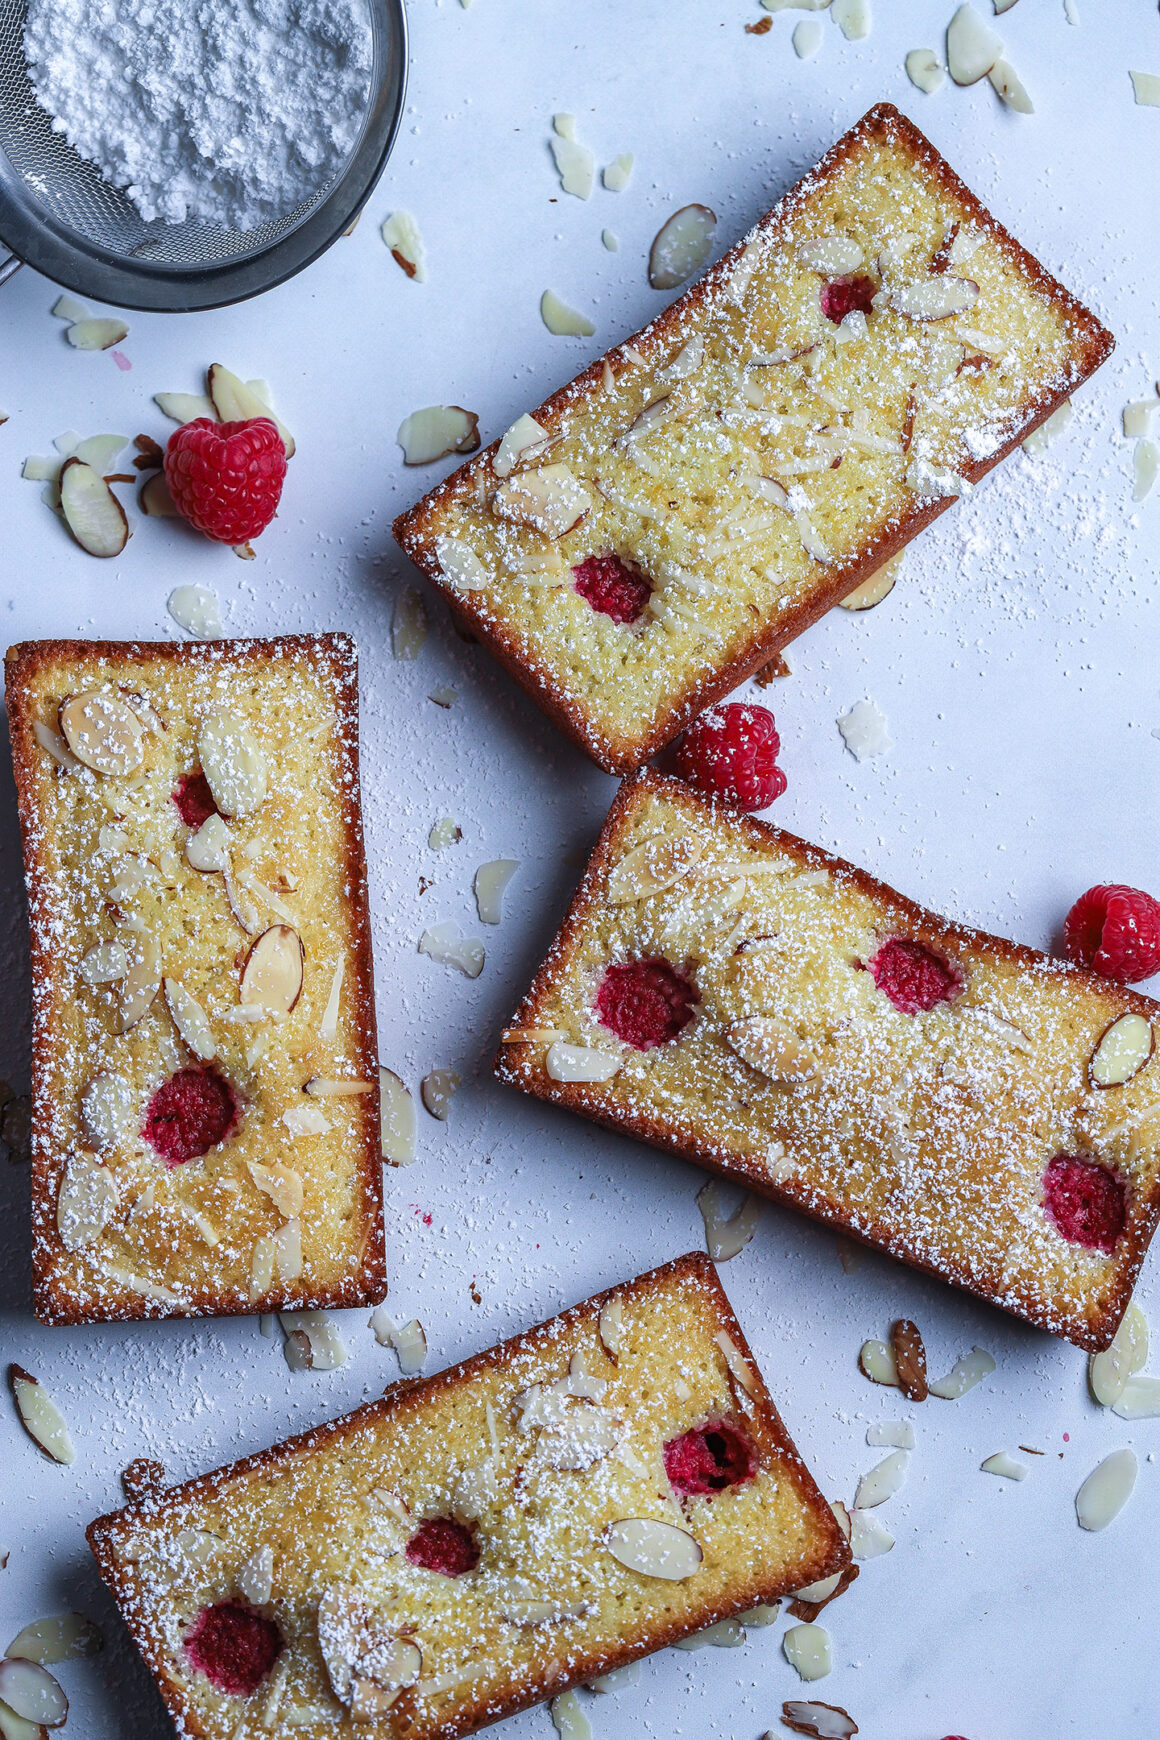 raspberry almond financiers dusted with powdered sugar-